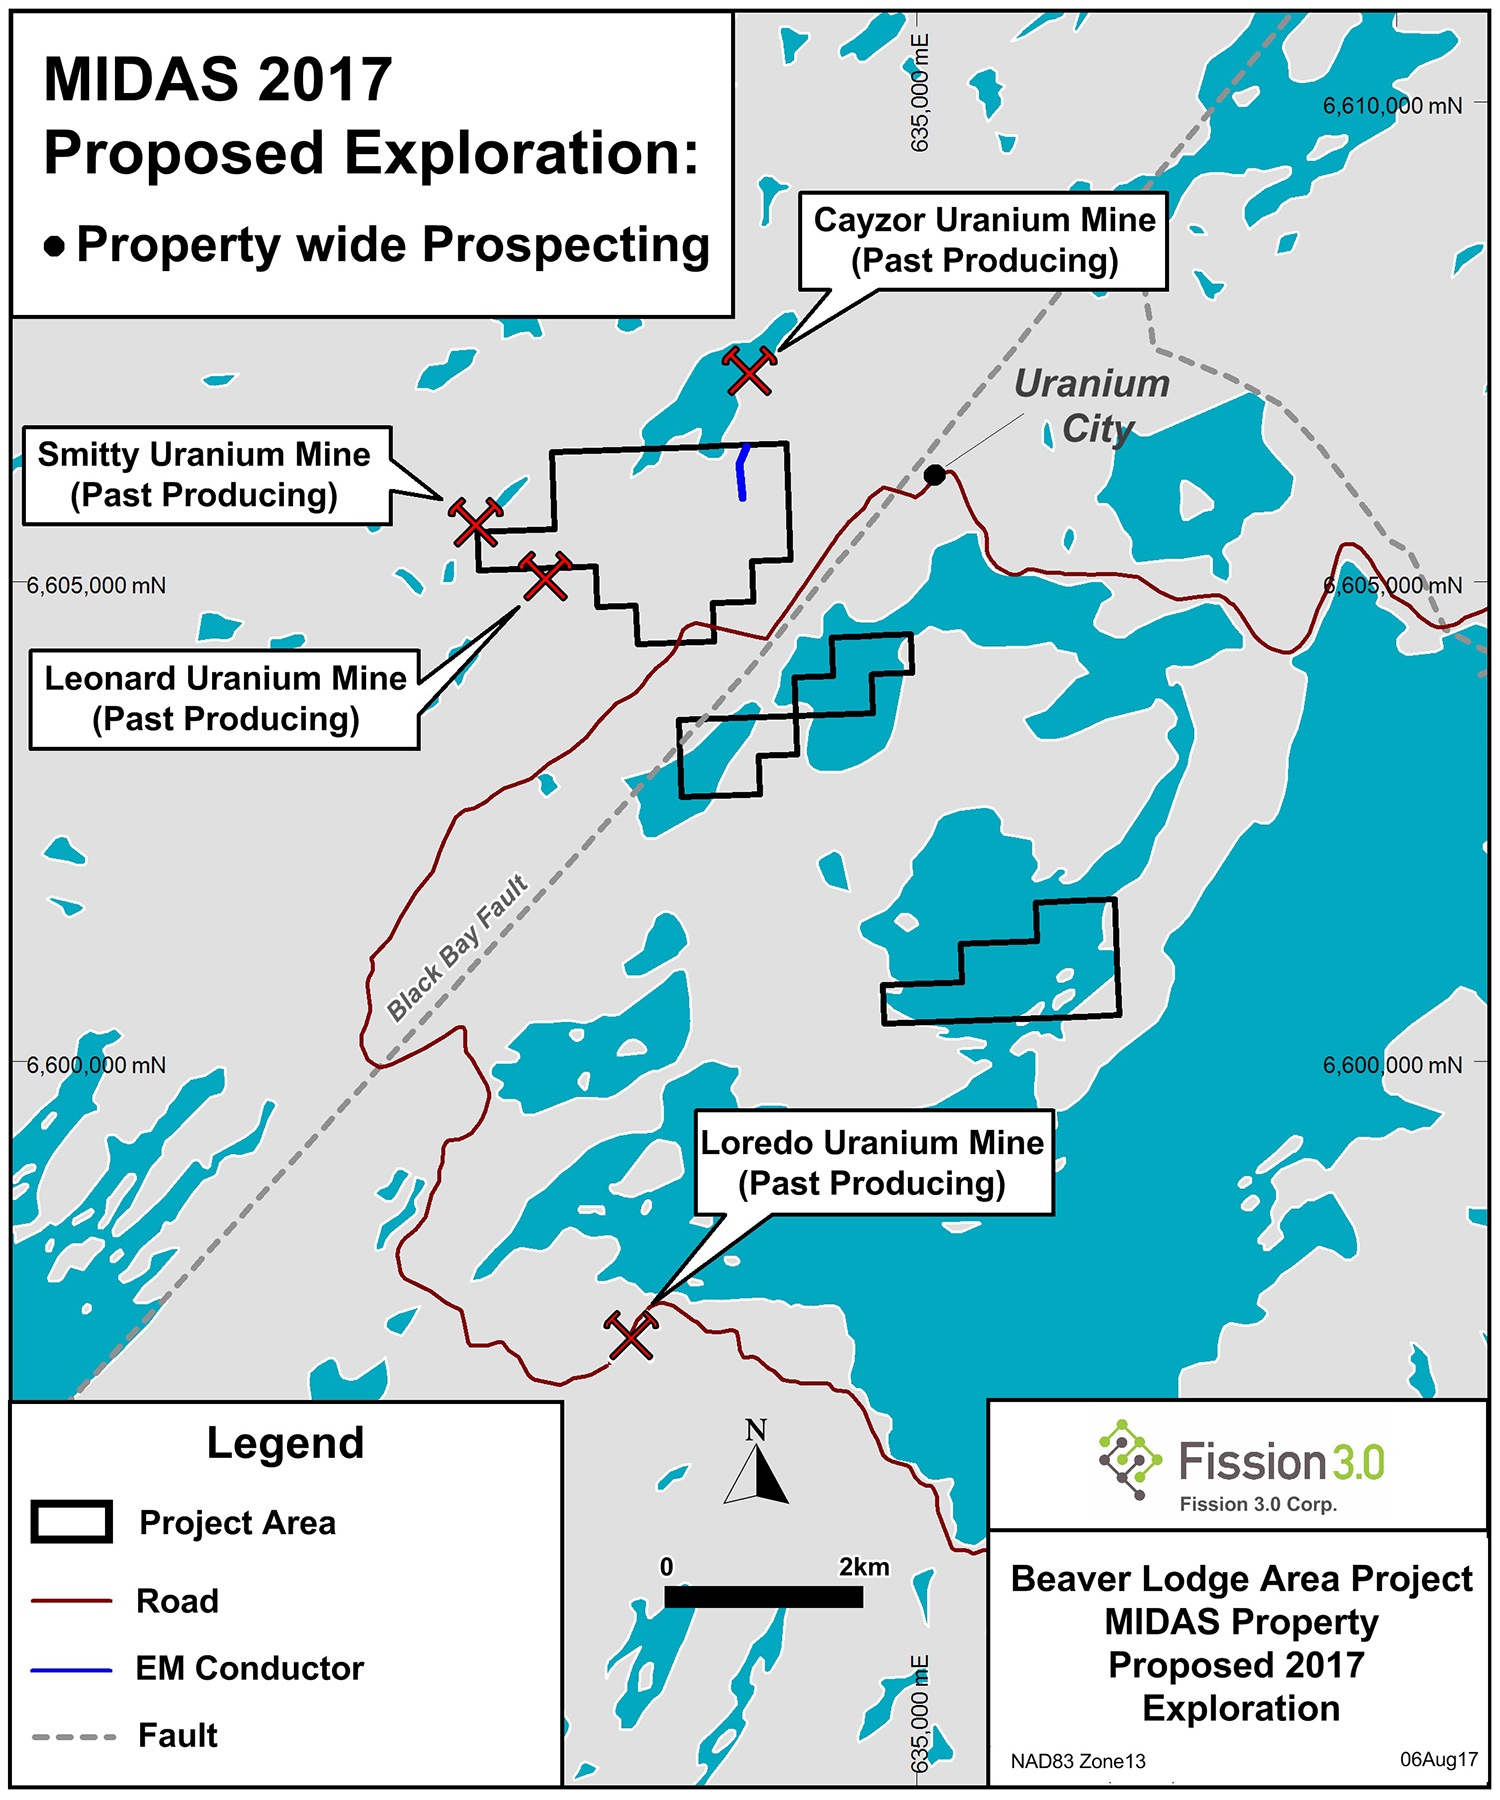 Beaver Lodge Area Project MIDAS Property Proposed 2017 Exploration